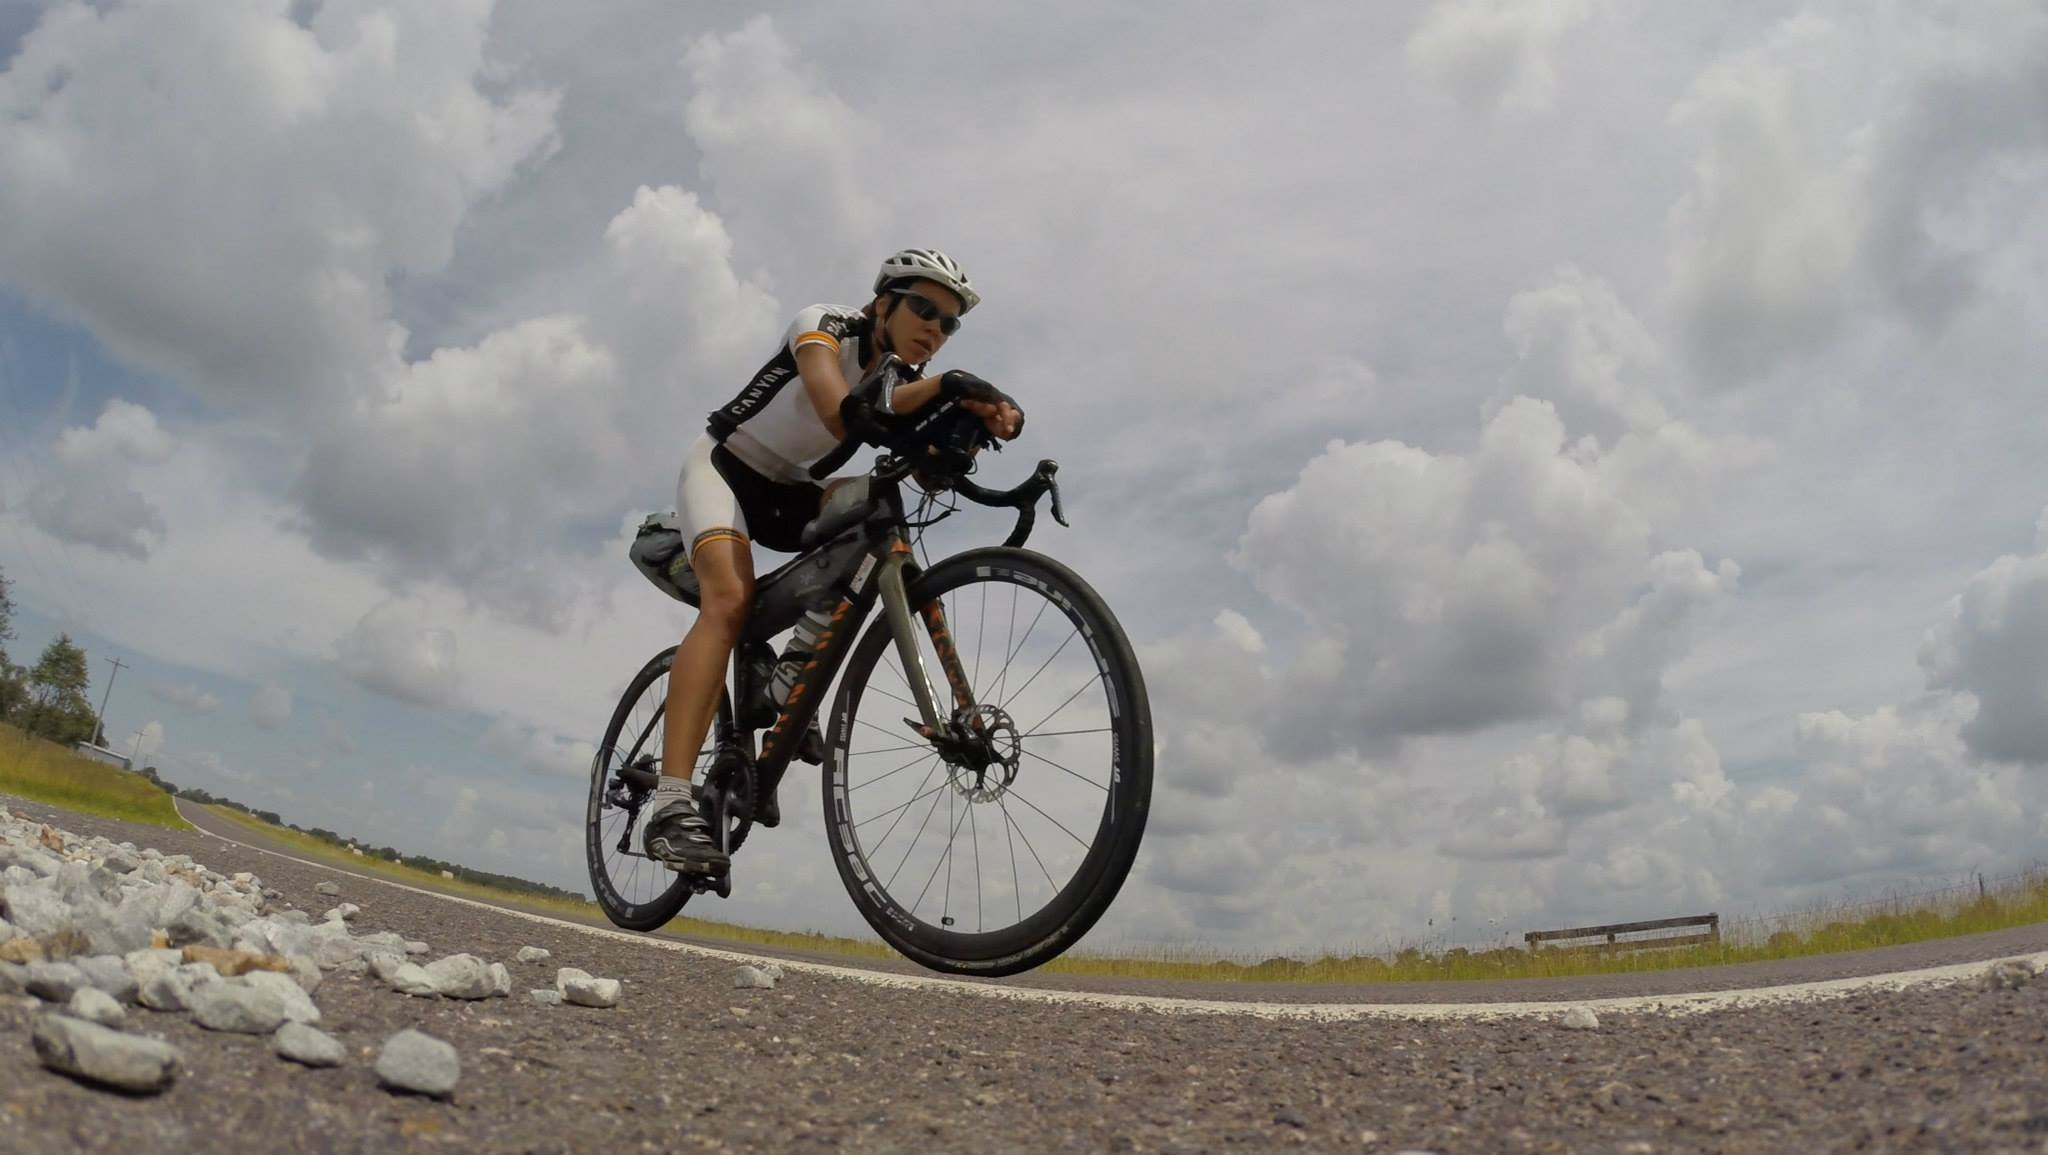 trans am - ultra endurance cyclist juliana buhring